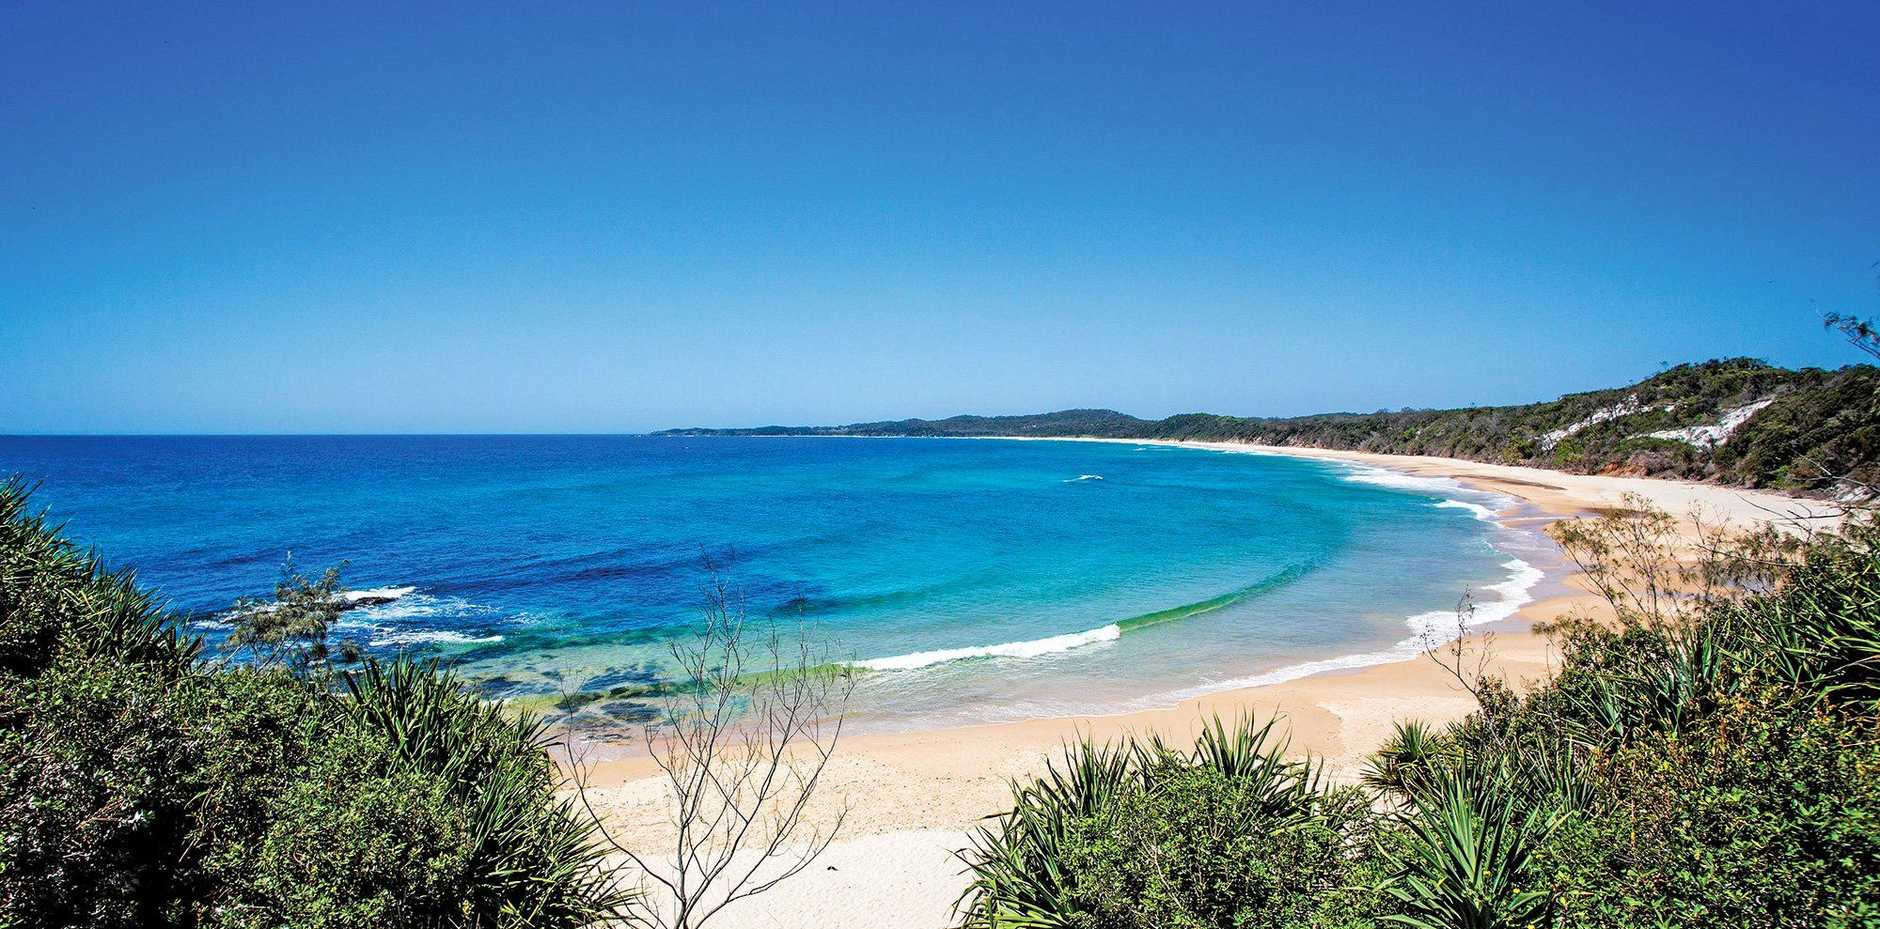 RIGHT: The appealing Clarence Valley coastline.